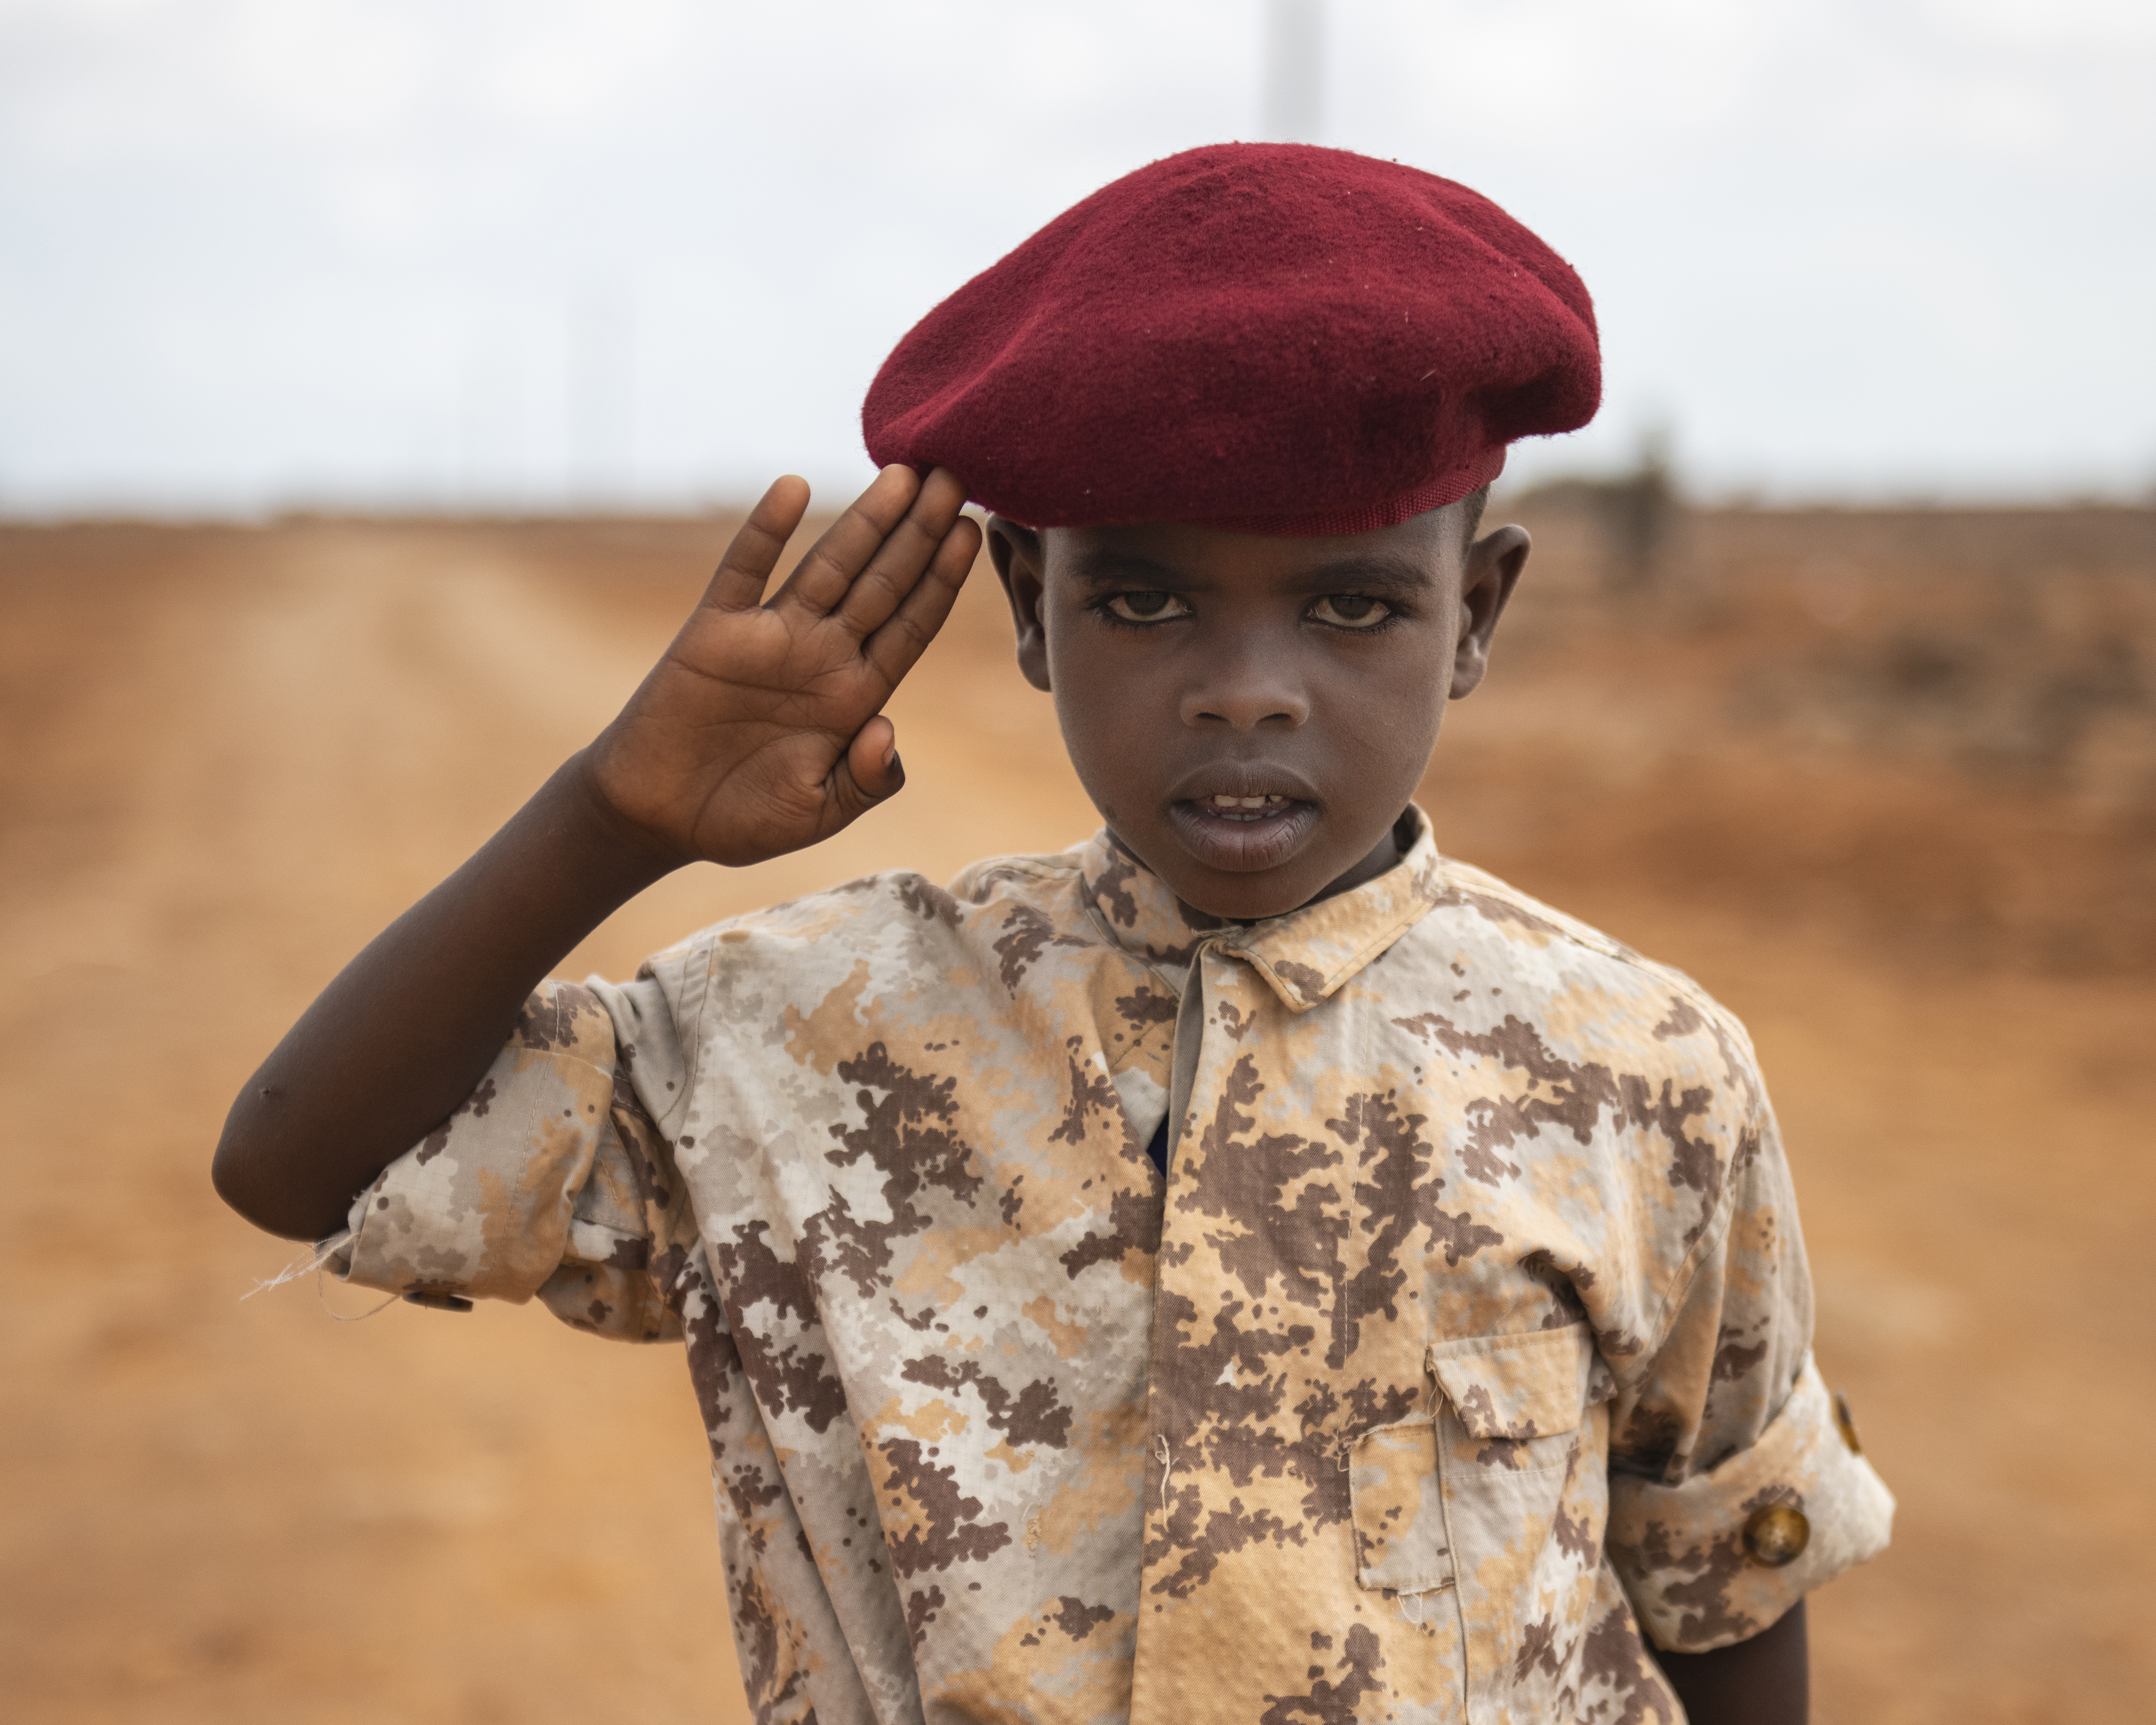 A Djiboutian youth dressed in military-style uniform salutes a U.S. Navy Seabee, from Naval Mobile Construction Battalion 1, Combined Joint Task Force - Horn of Africa, during the Ali Oune Medial Clinic ribbon cutting ceremony in Ali Oune, Djibouti, Jan. 31, 2019. The clinic, which the Seabees have been working to complete for five months, is intended to enhance the Ministry of Health for Djibouti's ability to provide basic medical, birth and after care to the Ali Oune village and its more than 1,000 residents and rural neighbors. (U.S. Air Force photo by Tech. Sgt. Shawn Nickel)